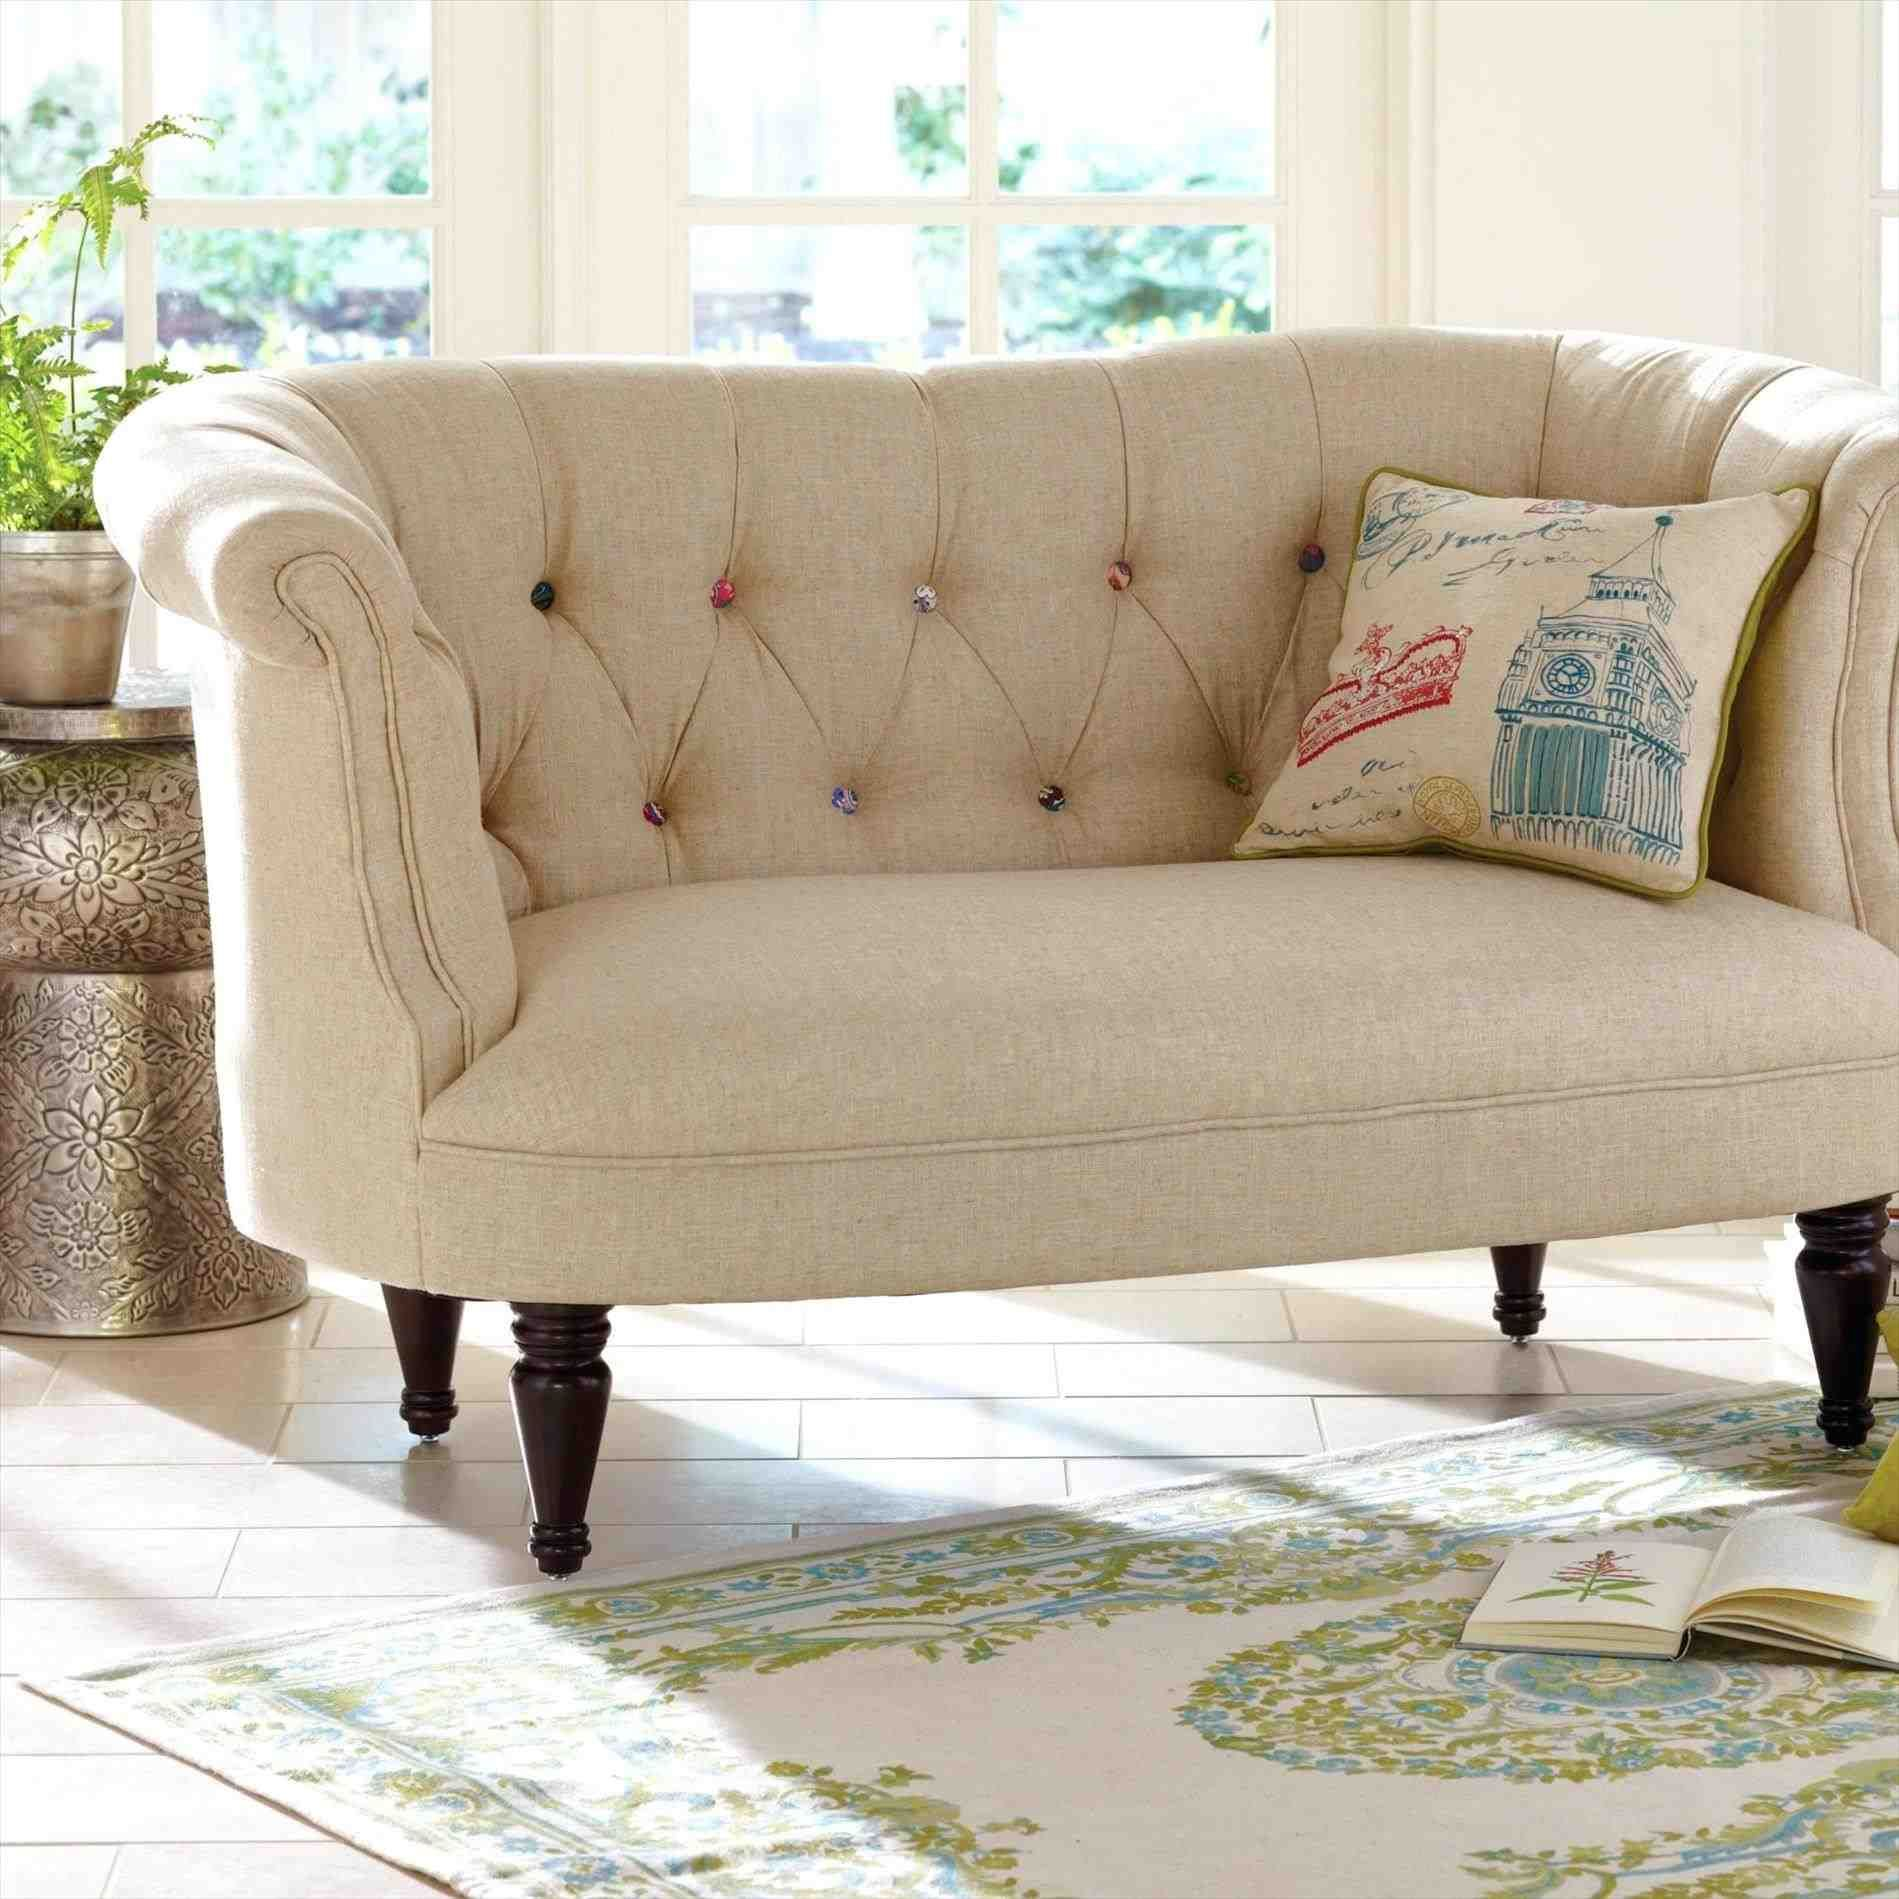 Sofa Stores Near Me: Cheap Loveseats Near Me (With Images)